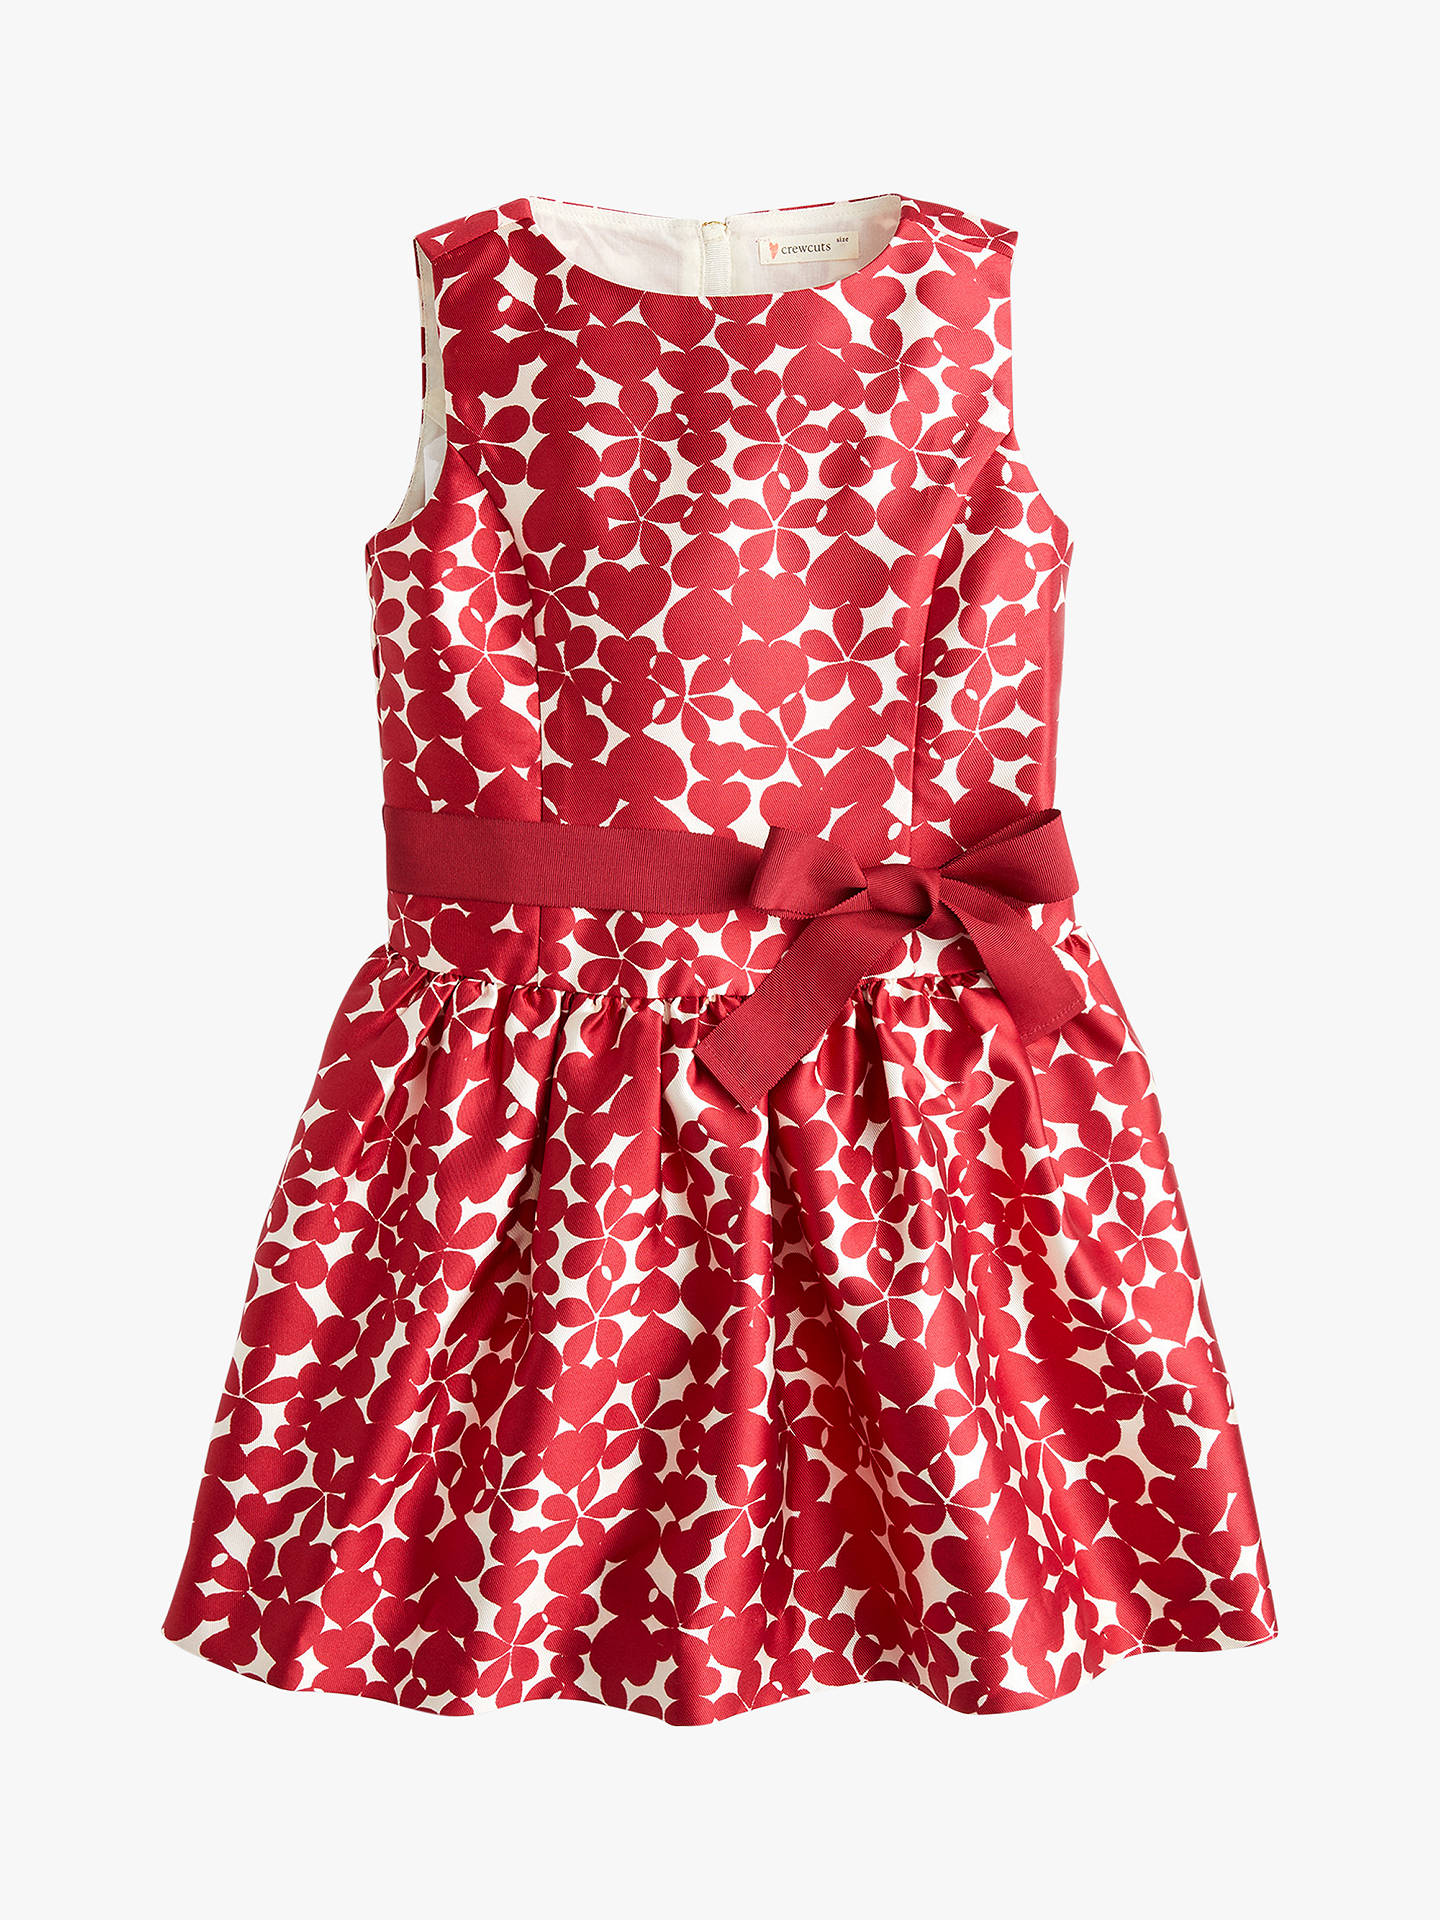 617e4ab6967 Buy crewcuts by J.Crew Girls  Heart and Flower Dress